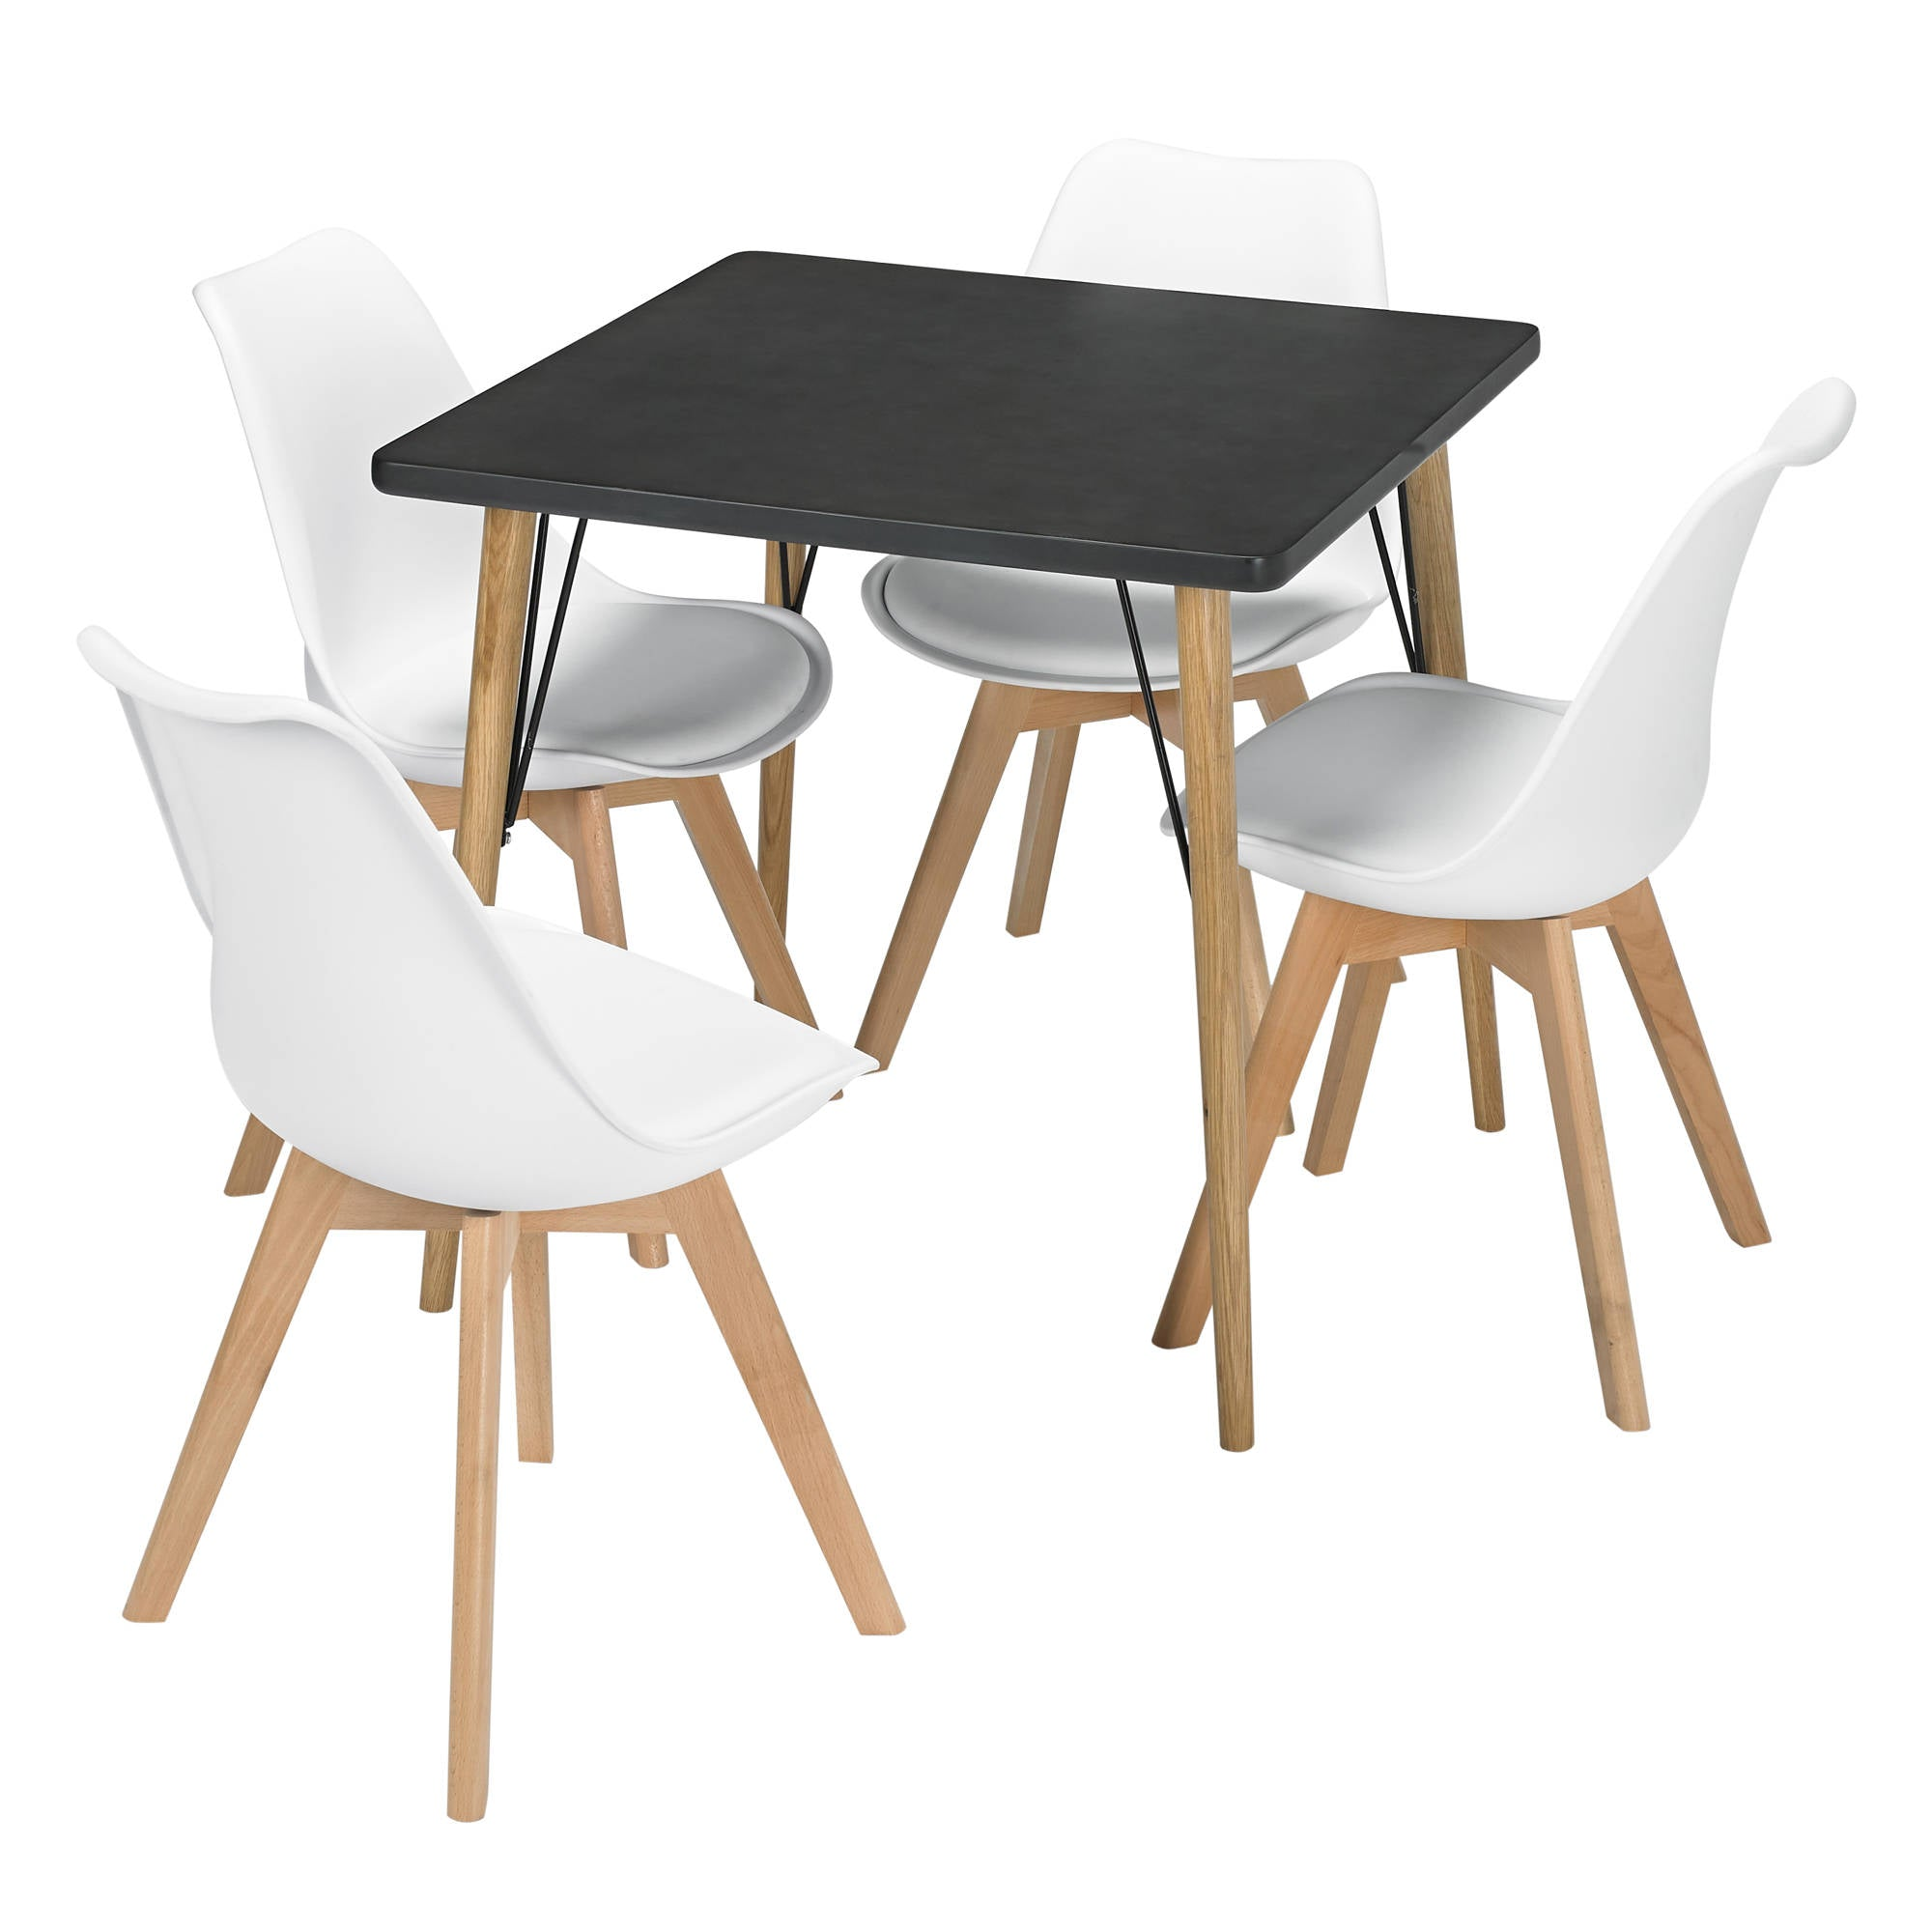 Kilby Square Dining Table